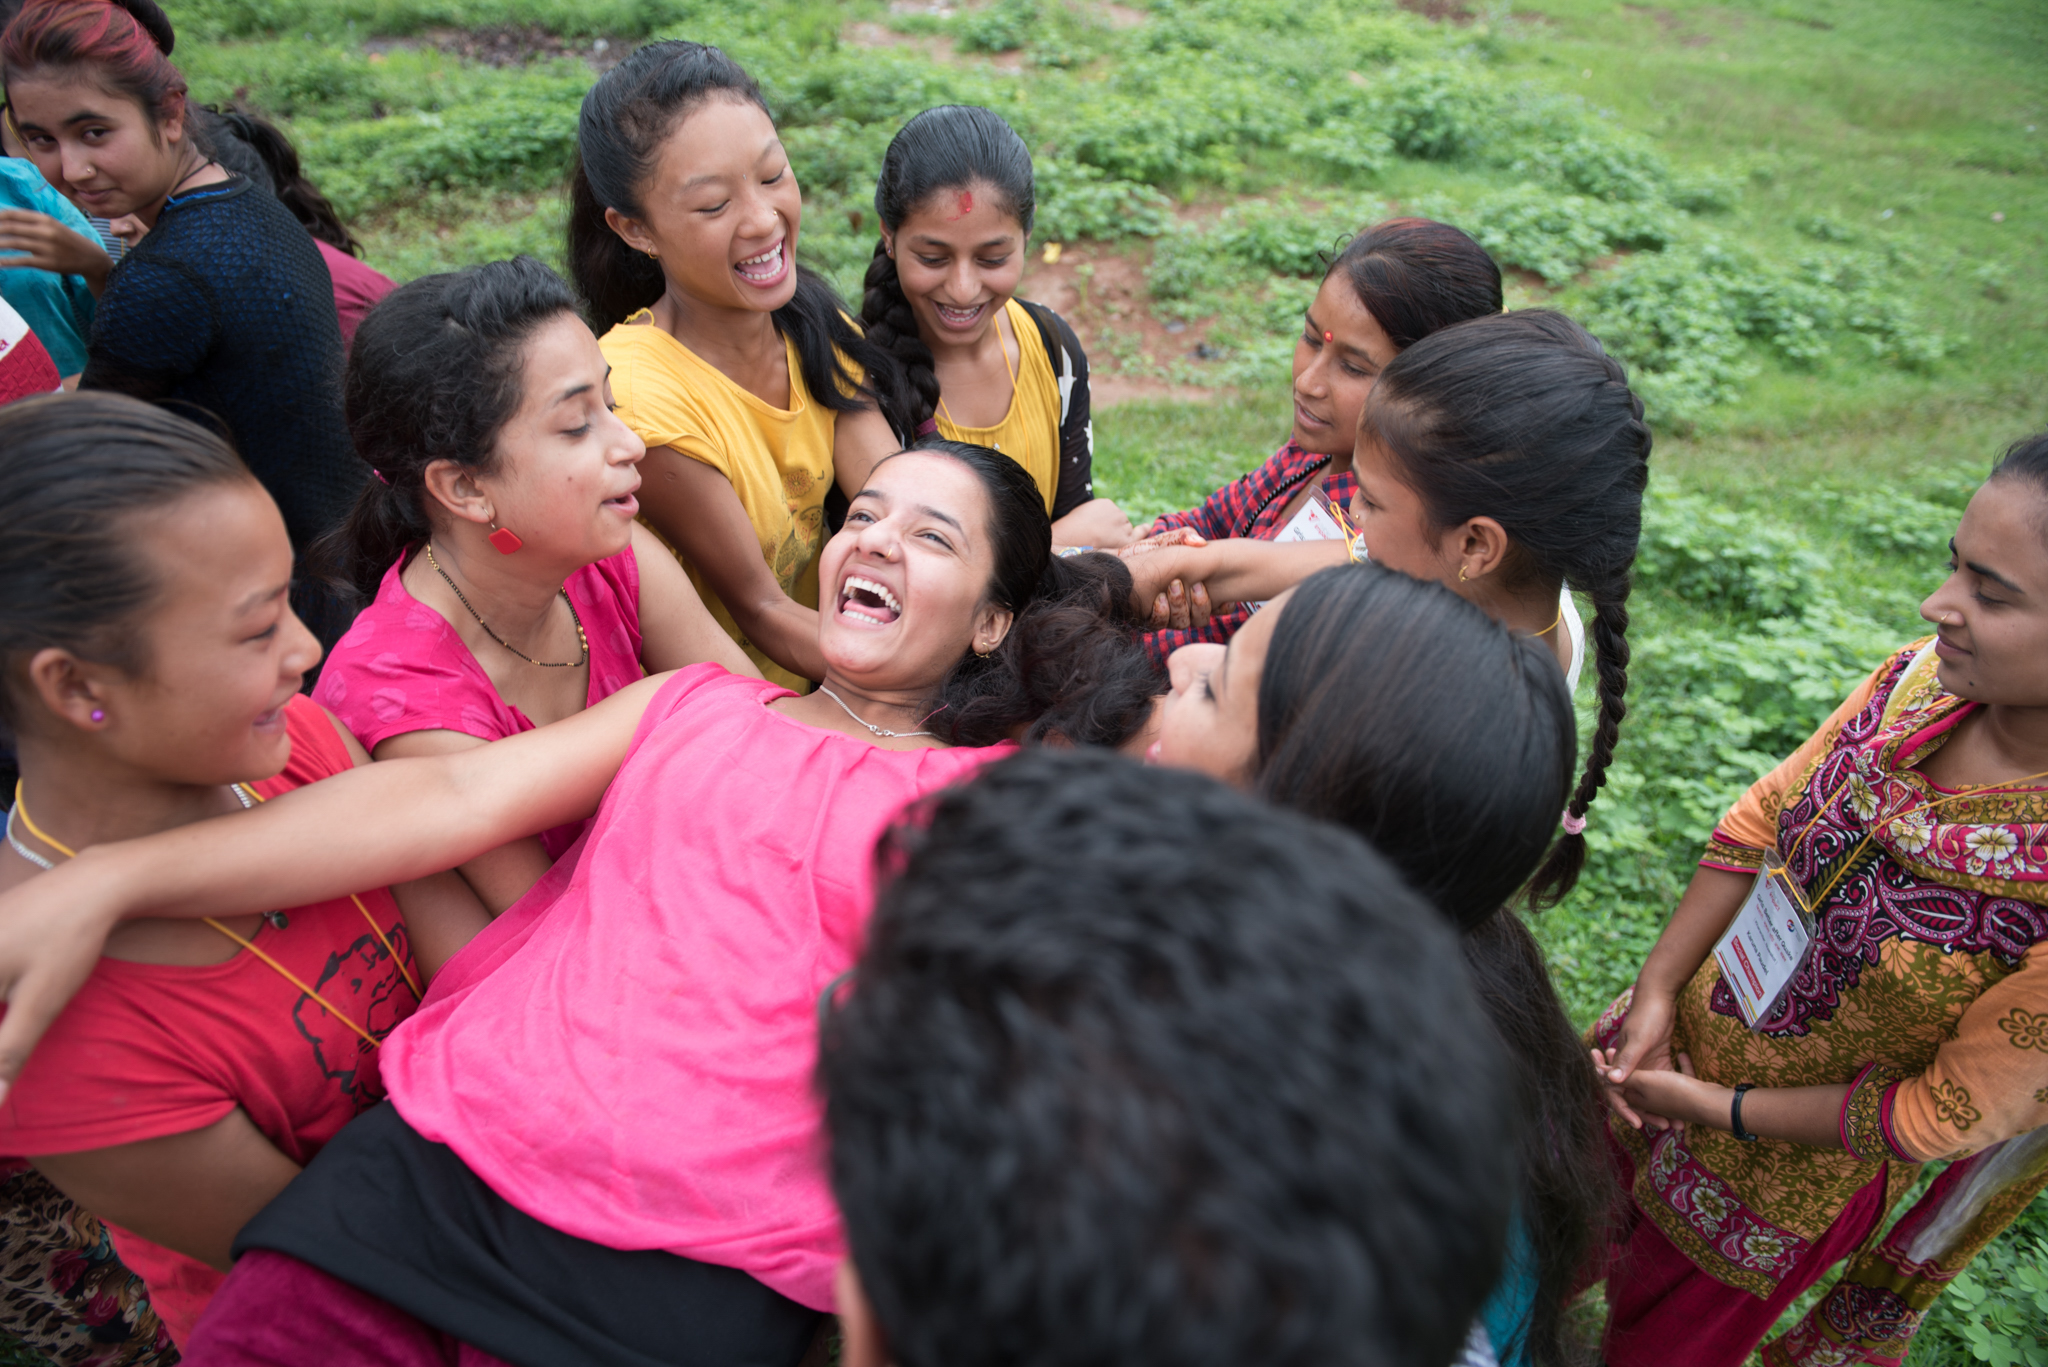 The Accountability Lab spent two days working alongside Nepali nonprofit, Visible Impact, educating 15 local girls in the rural village of Nuwakot in Nepal on accountability and activism in August 2016. This was a team building exercise in trust. (Photo taken by Brittany Wait)